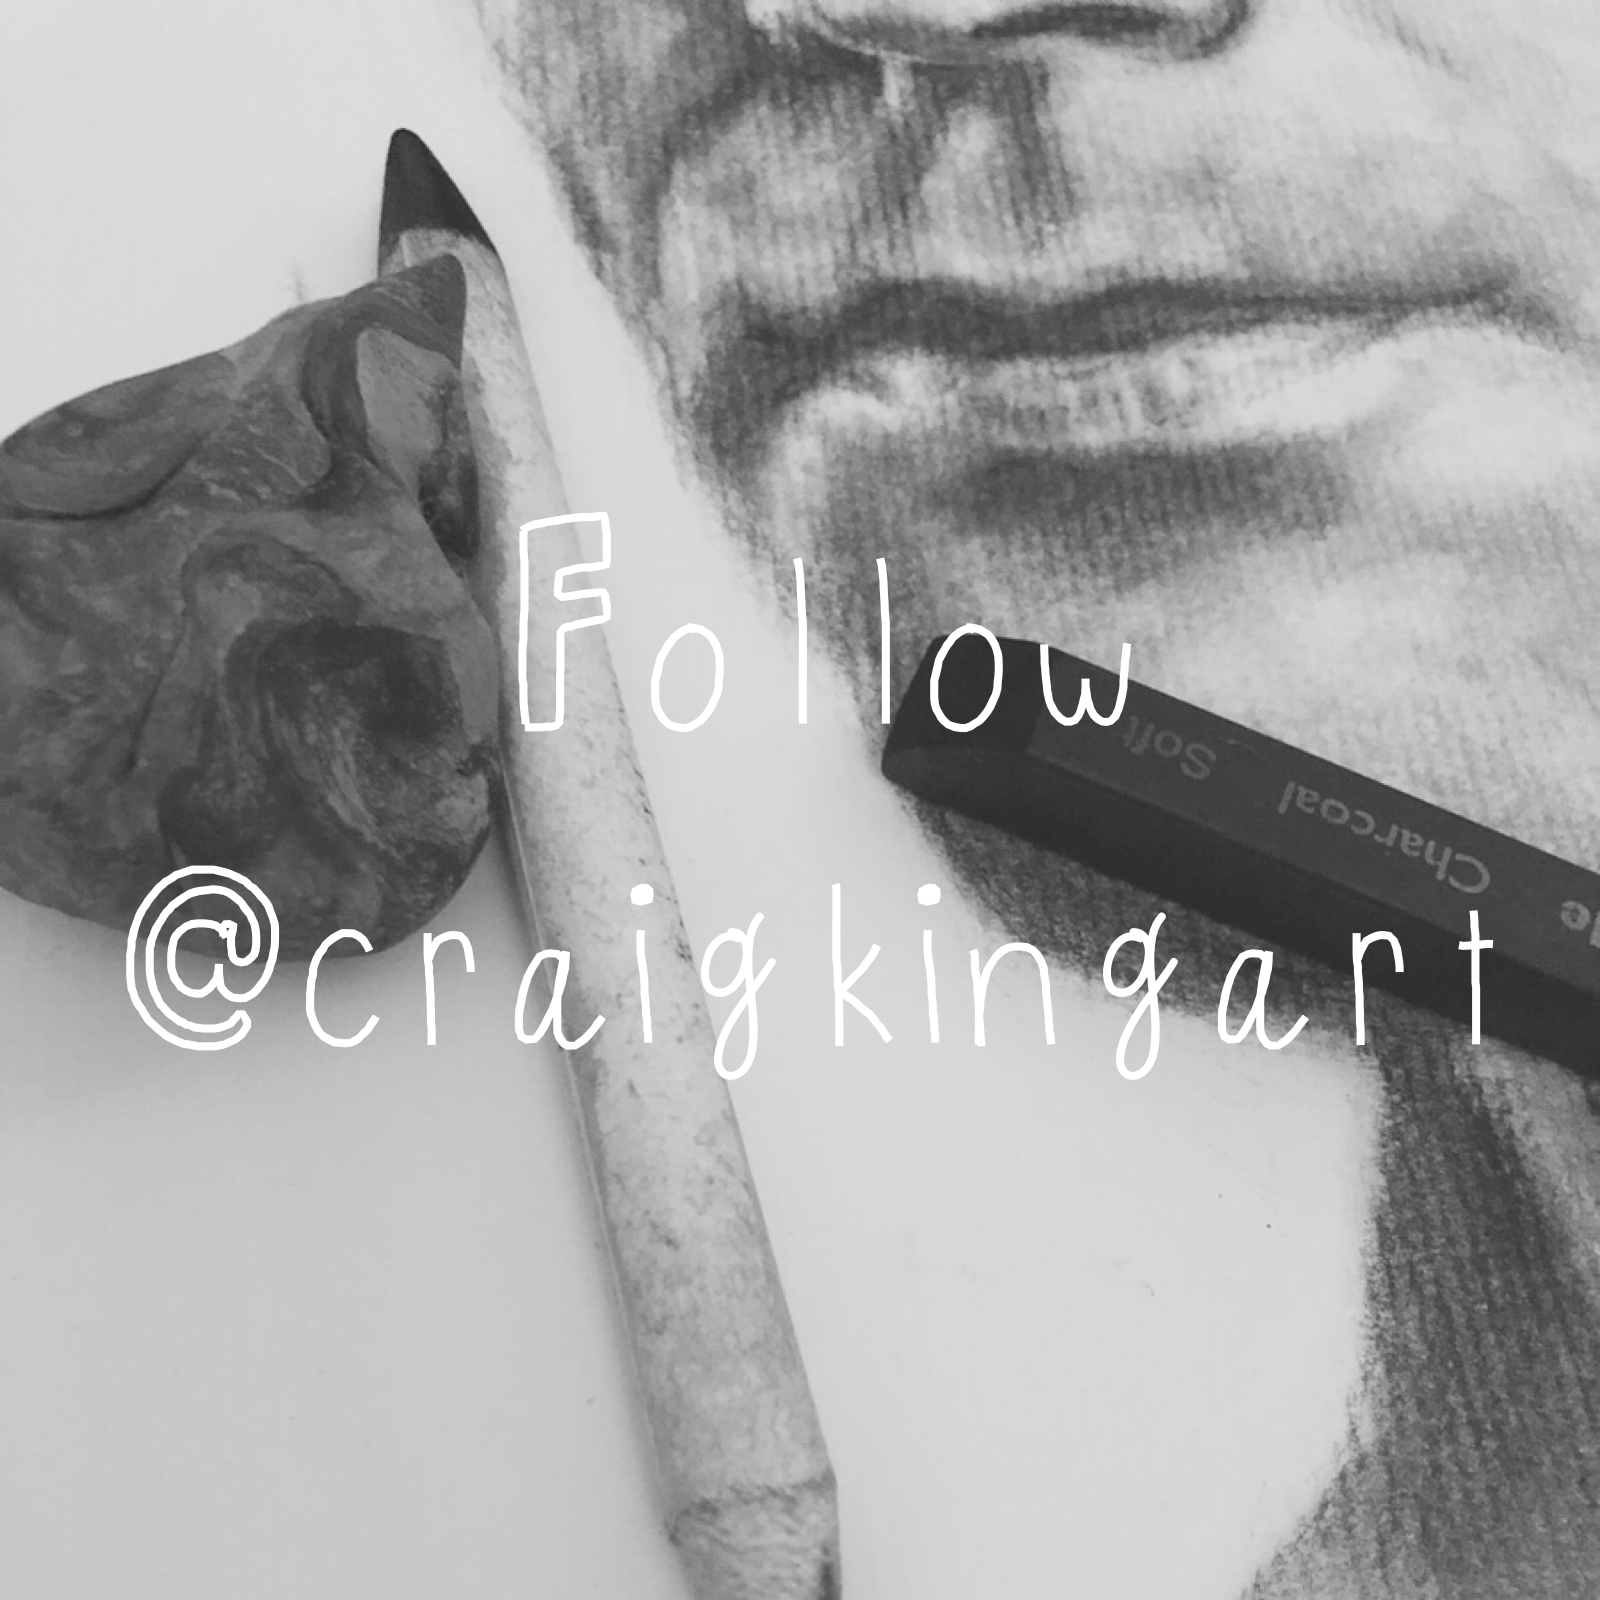 craig_king_portrait_artist_charcoal_drawing_oil_painting_south_carolina.jpeg